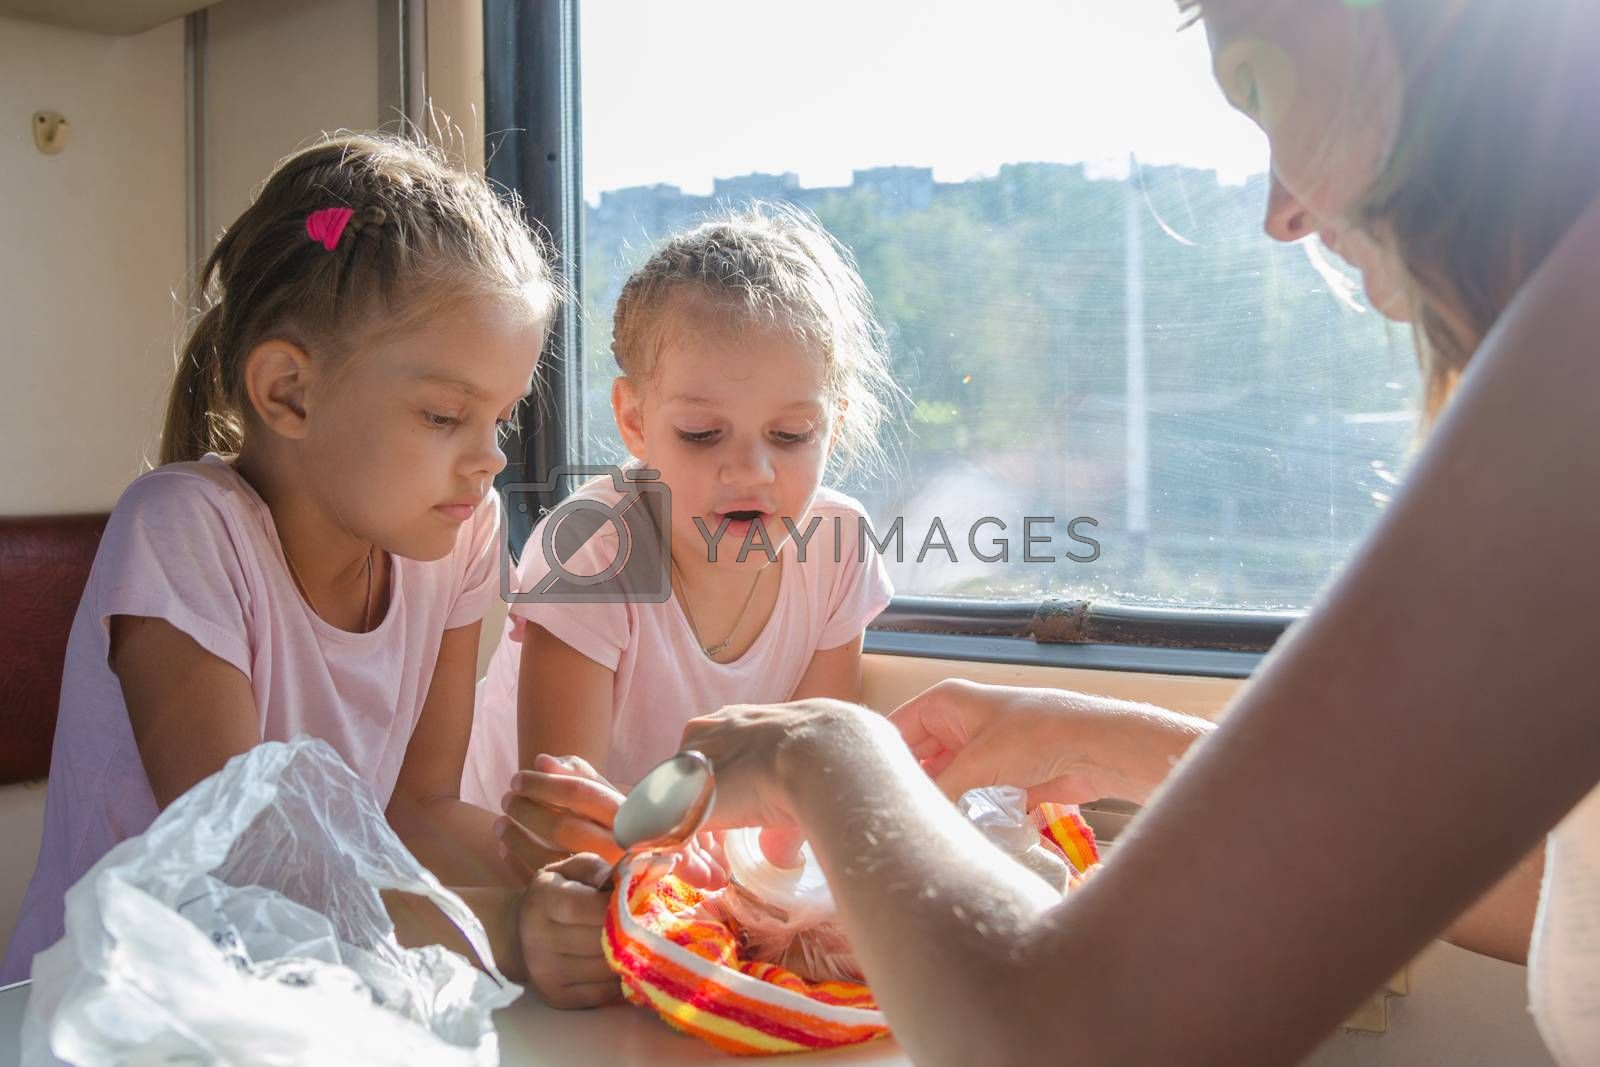 My mother unpacks prepared home food for hungry children in second-class train carriage